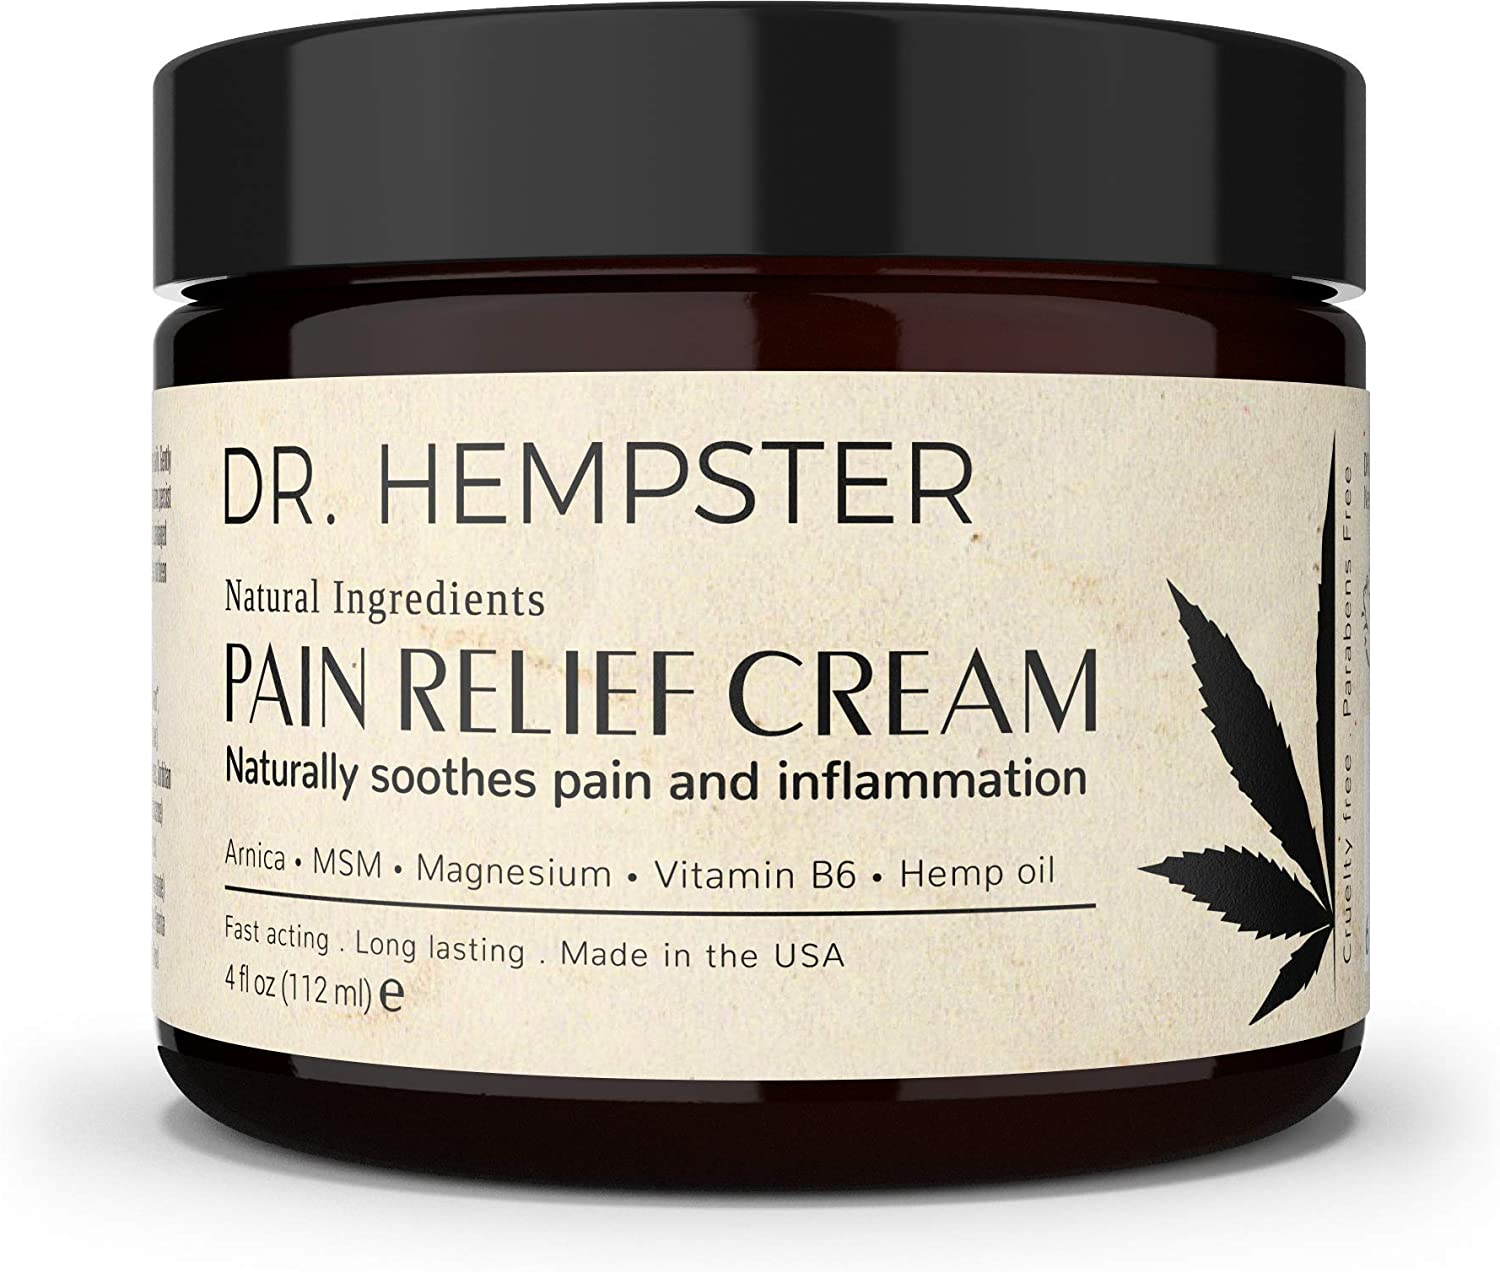 Hemp Oil Pain Relief Cream - 100% Natural Ingredients and Cruelty-Free, No Emu Fats Used - Rapid Absorption, and Non-Greasy Rub - Ideal for Back and Joint Pain Relief - USA Made